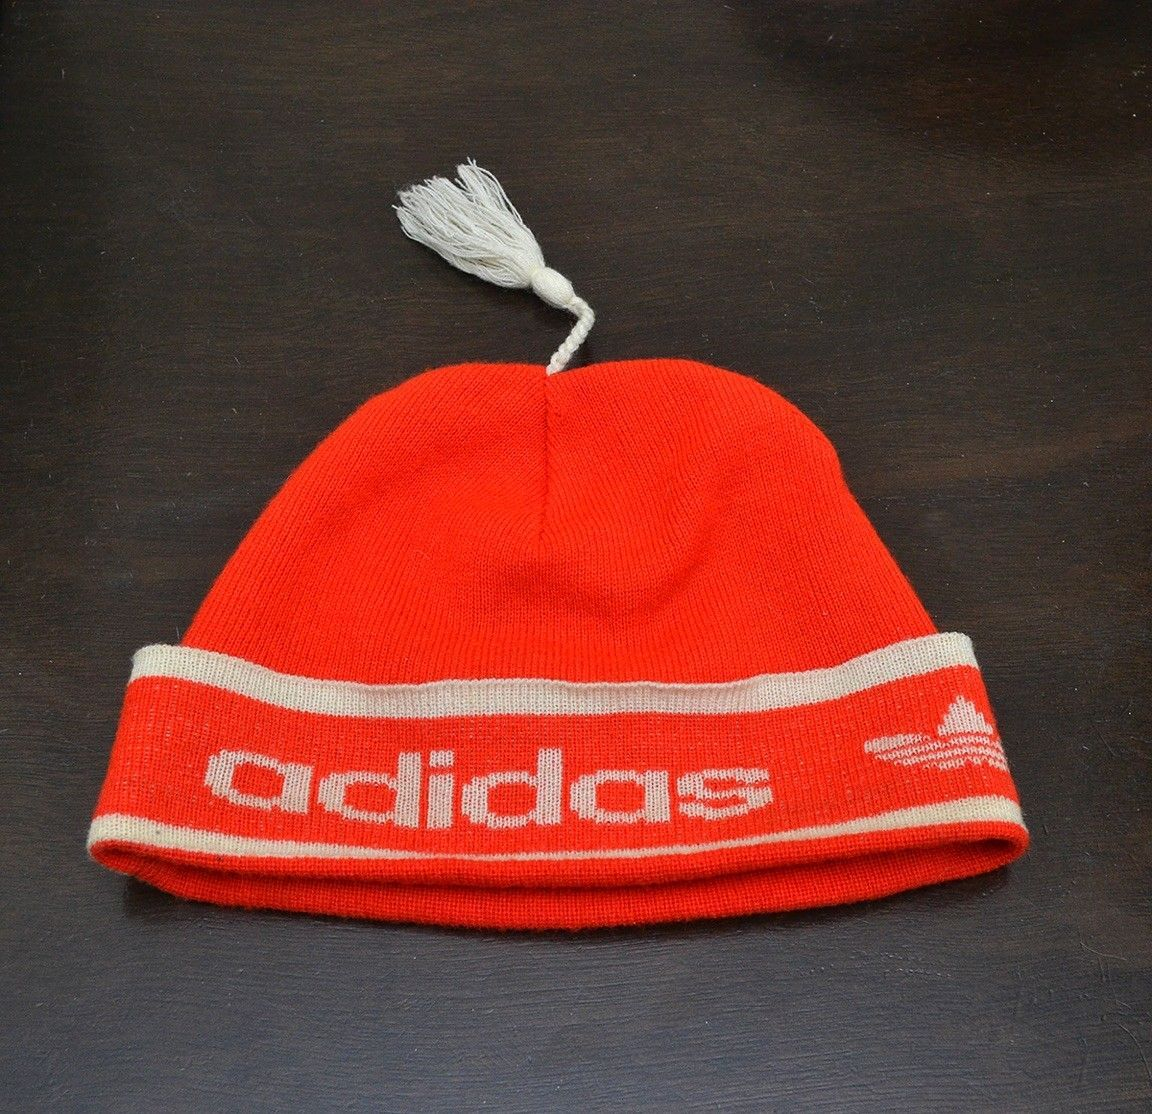 0063ec6549ebb Rare vintage Adidas knitted hat collectable and 50 similar items